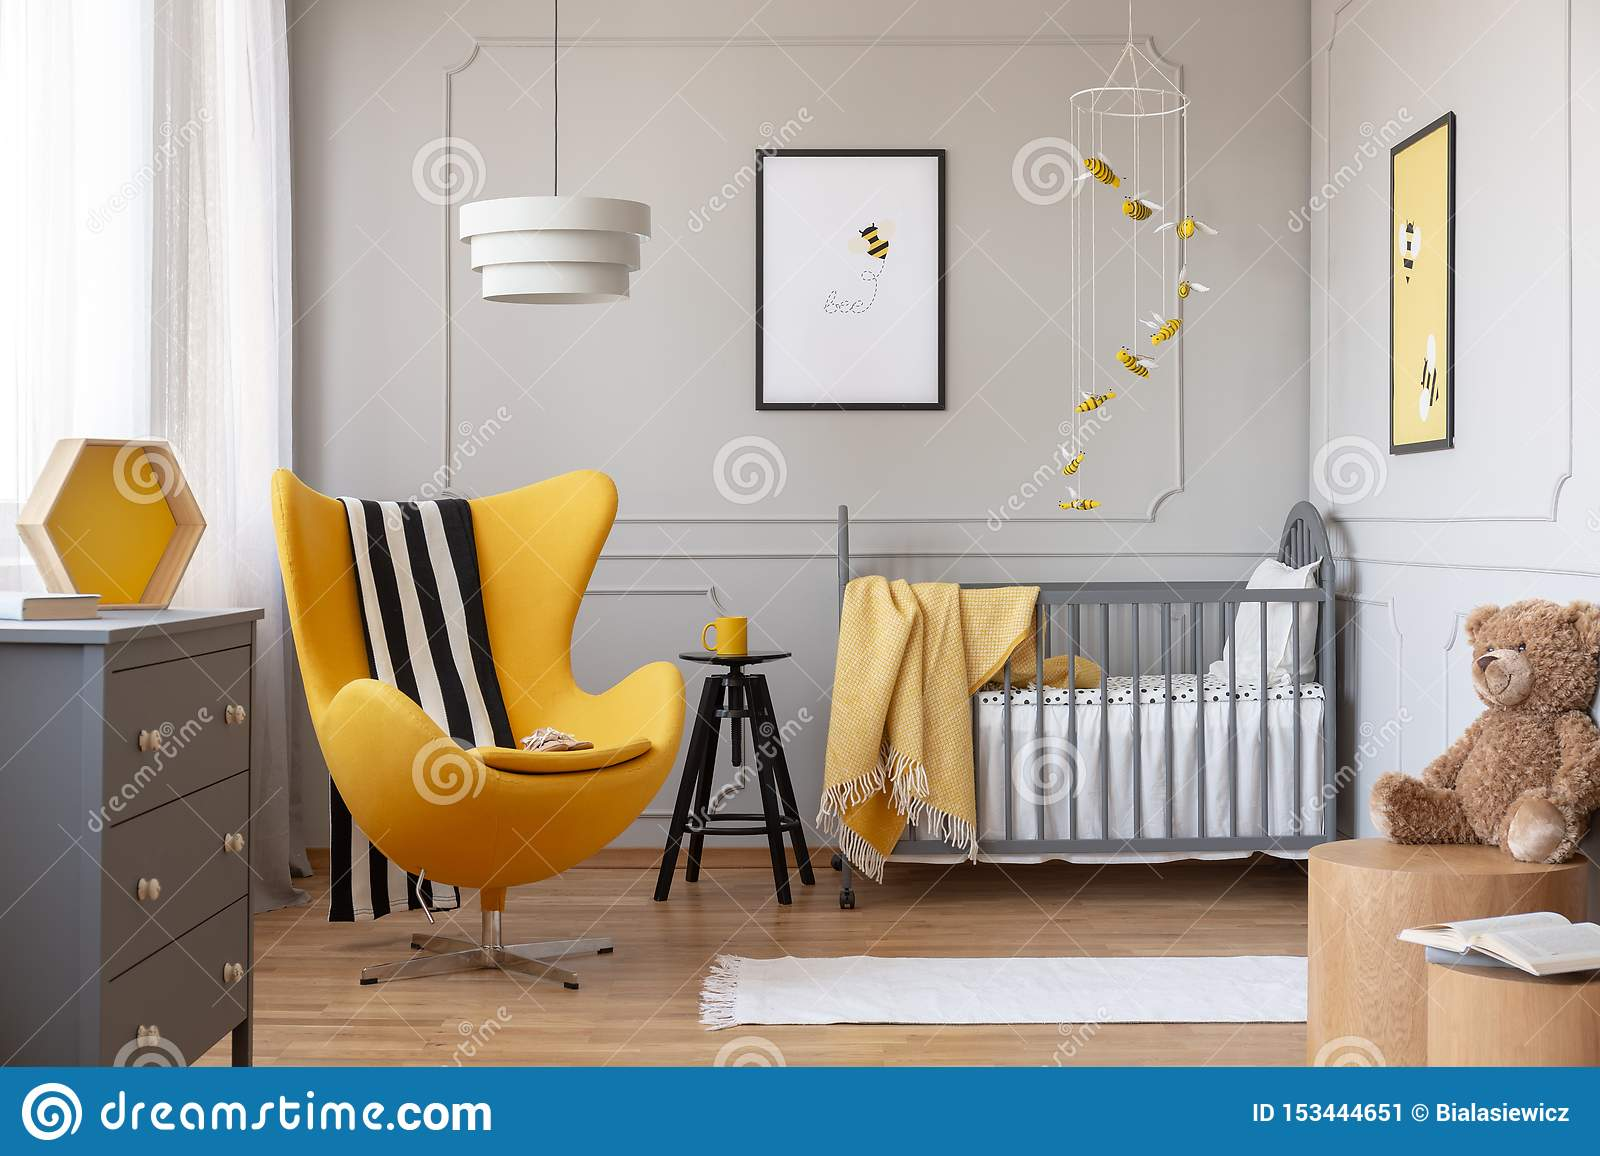 Black And White Blanket On Yellow Egg Chair In Grey Baby ...